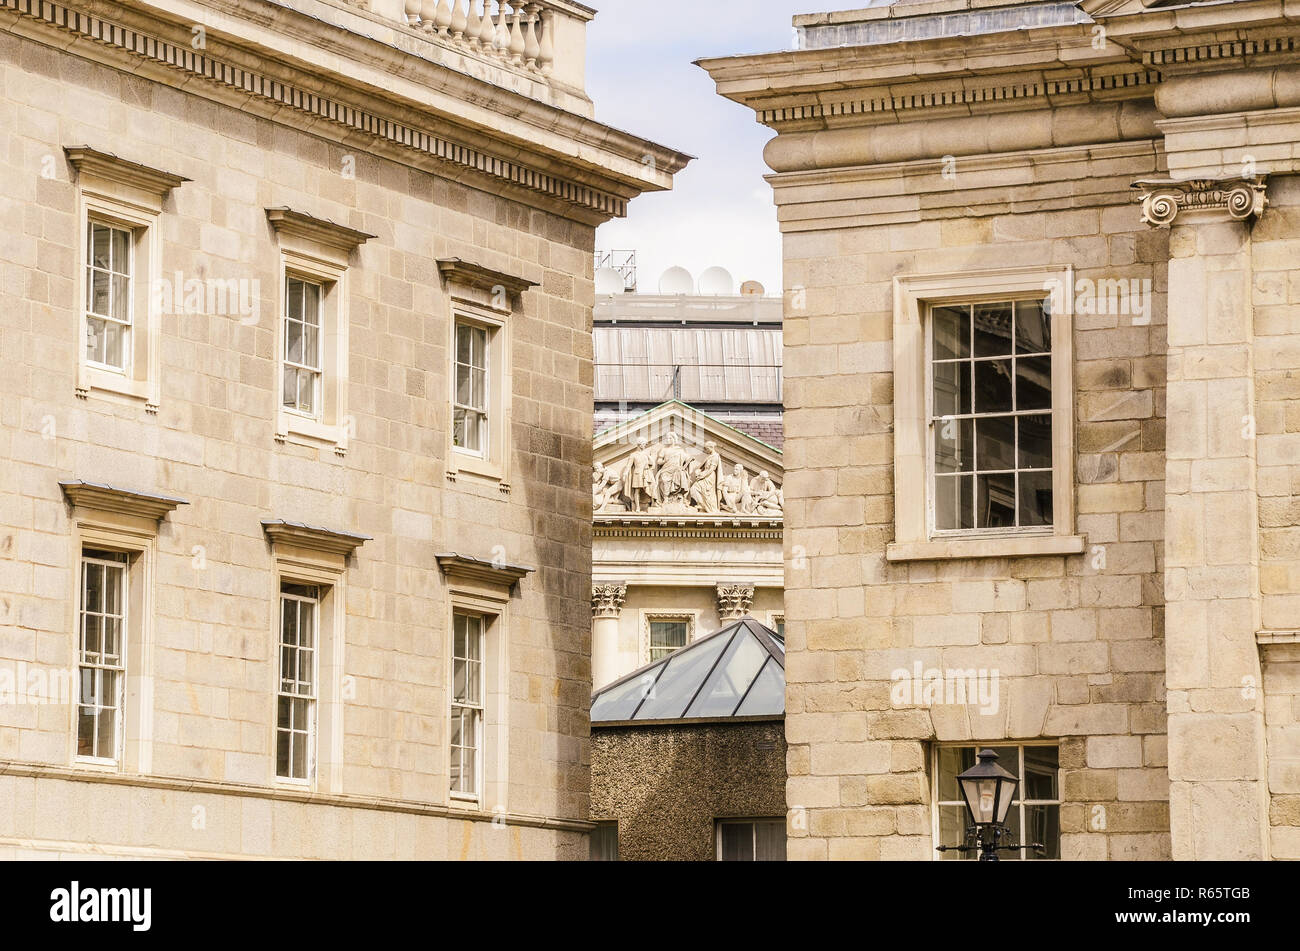 Elegant buildings with classical architecture on a college campus - Trinity College in Dublin, Ireland - Stock Image